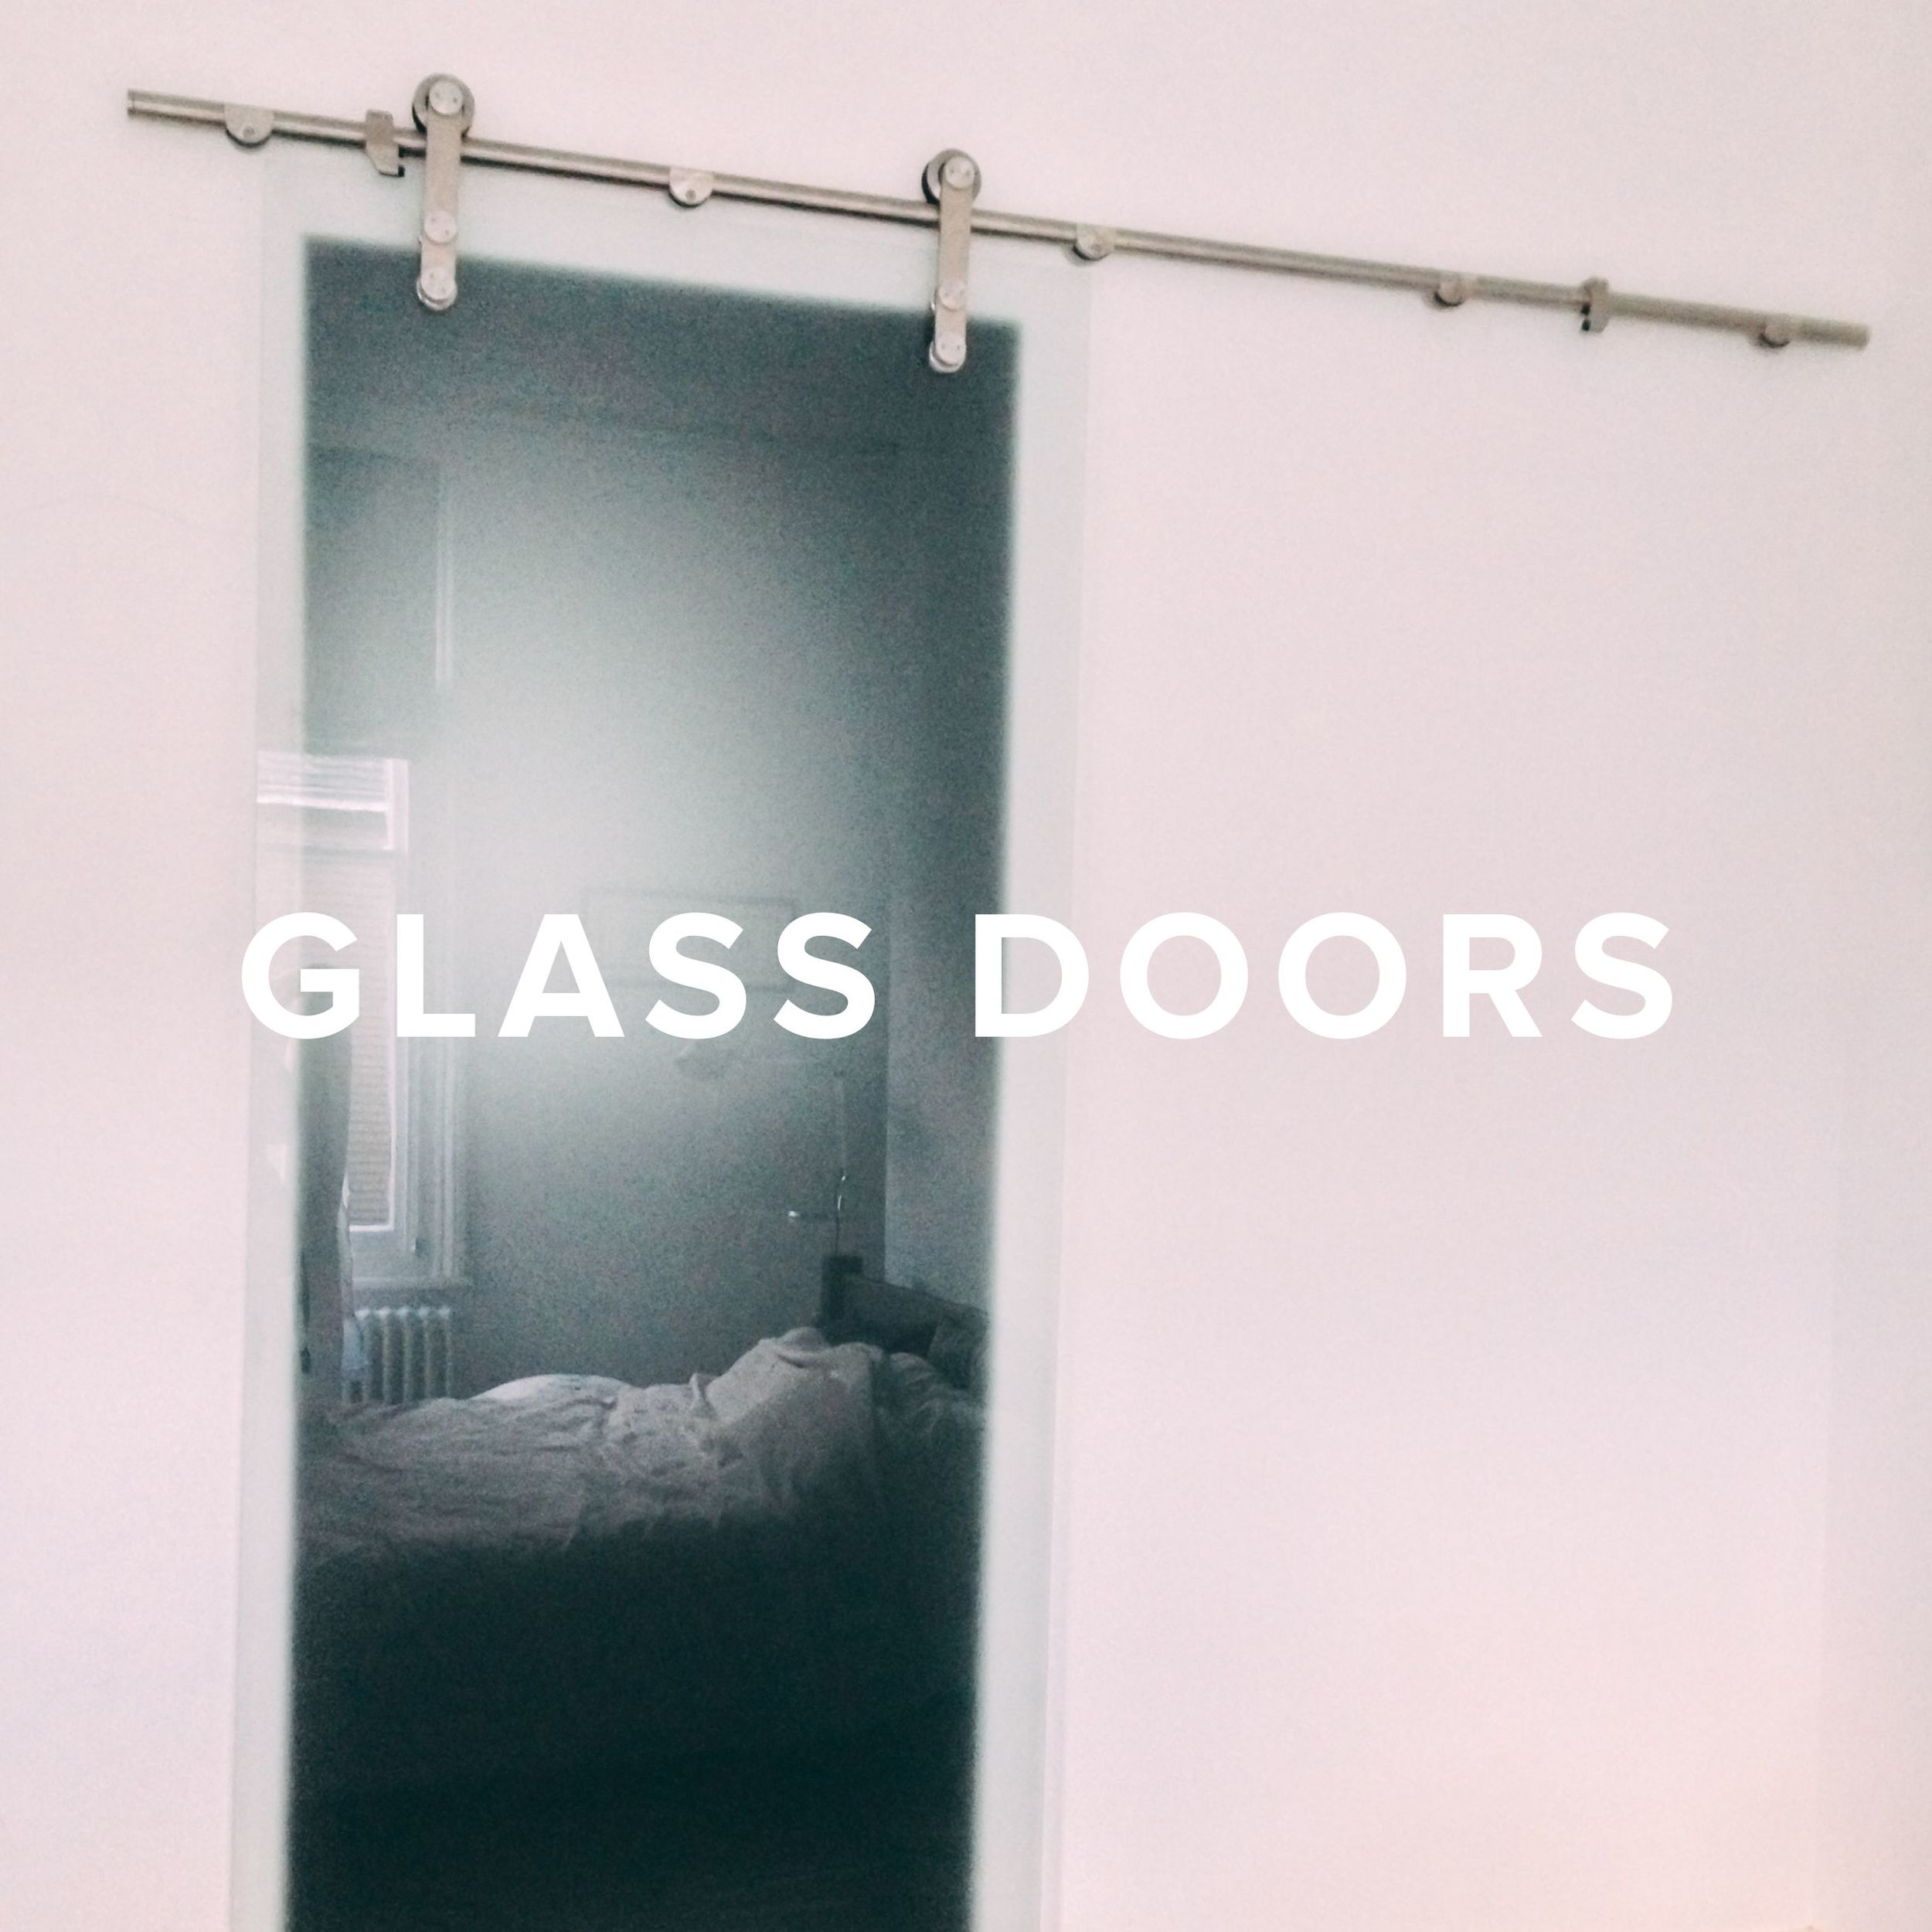 GLASS DOORS.jpg